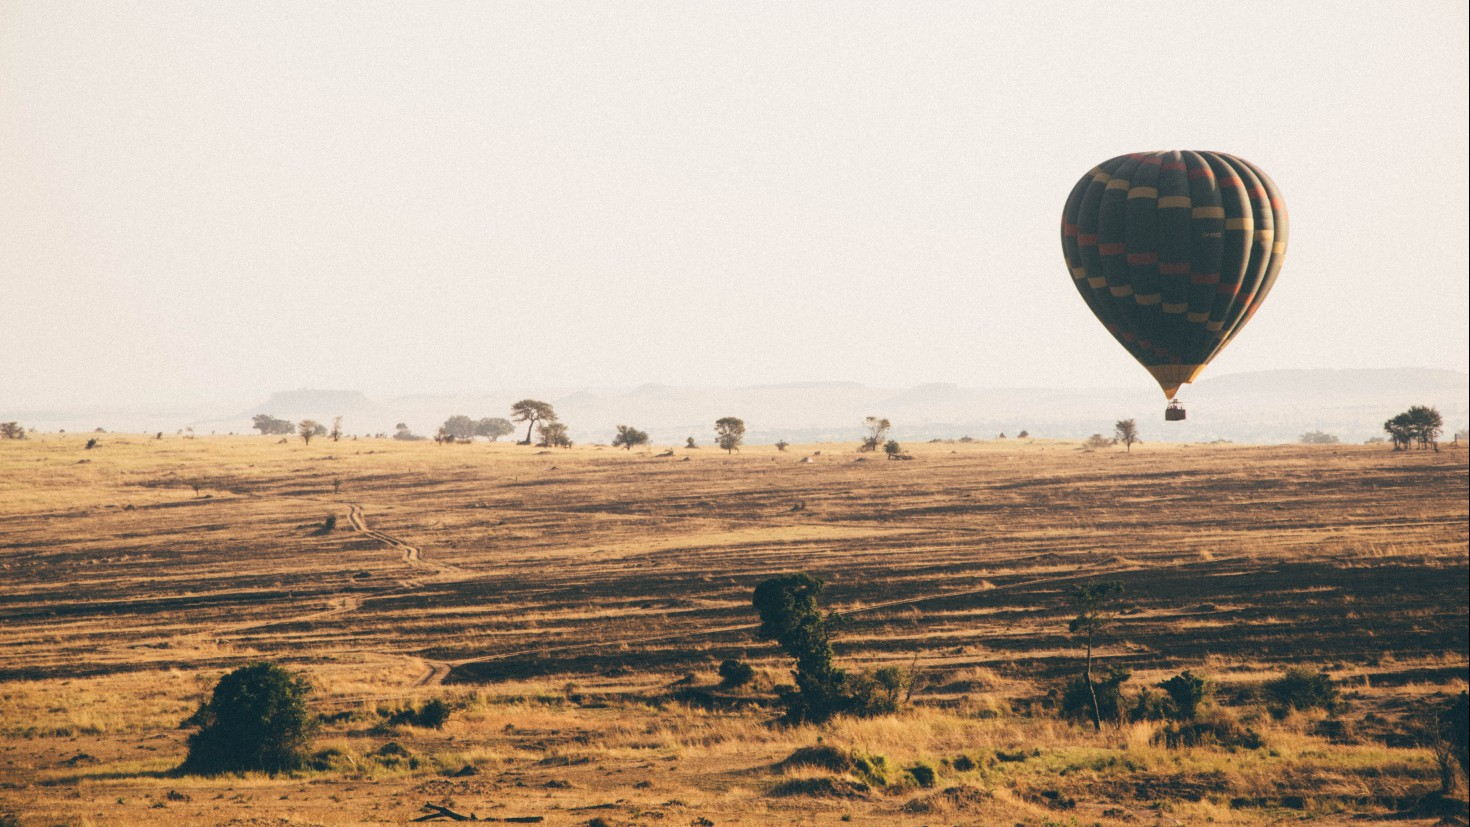 a new phd thesis discusses whether Agricultural investments in tanzania carry opportunities for smallholders as well as big farmers or whether this is merely hot air.